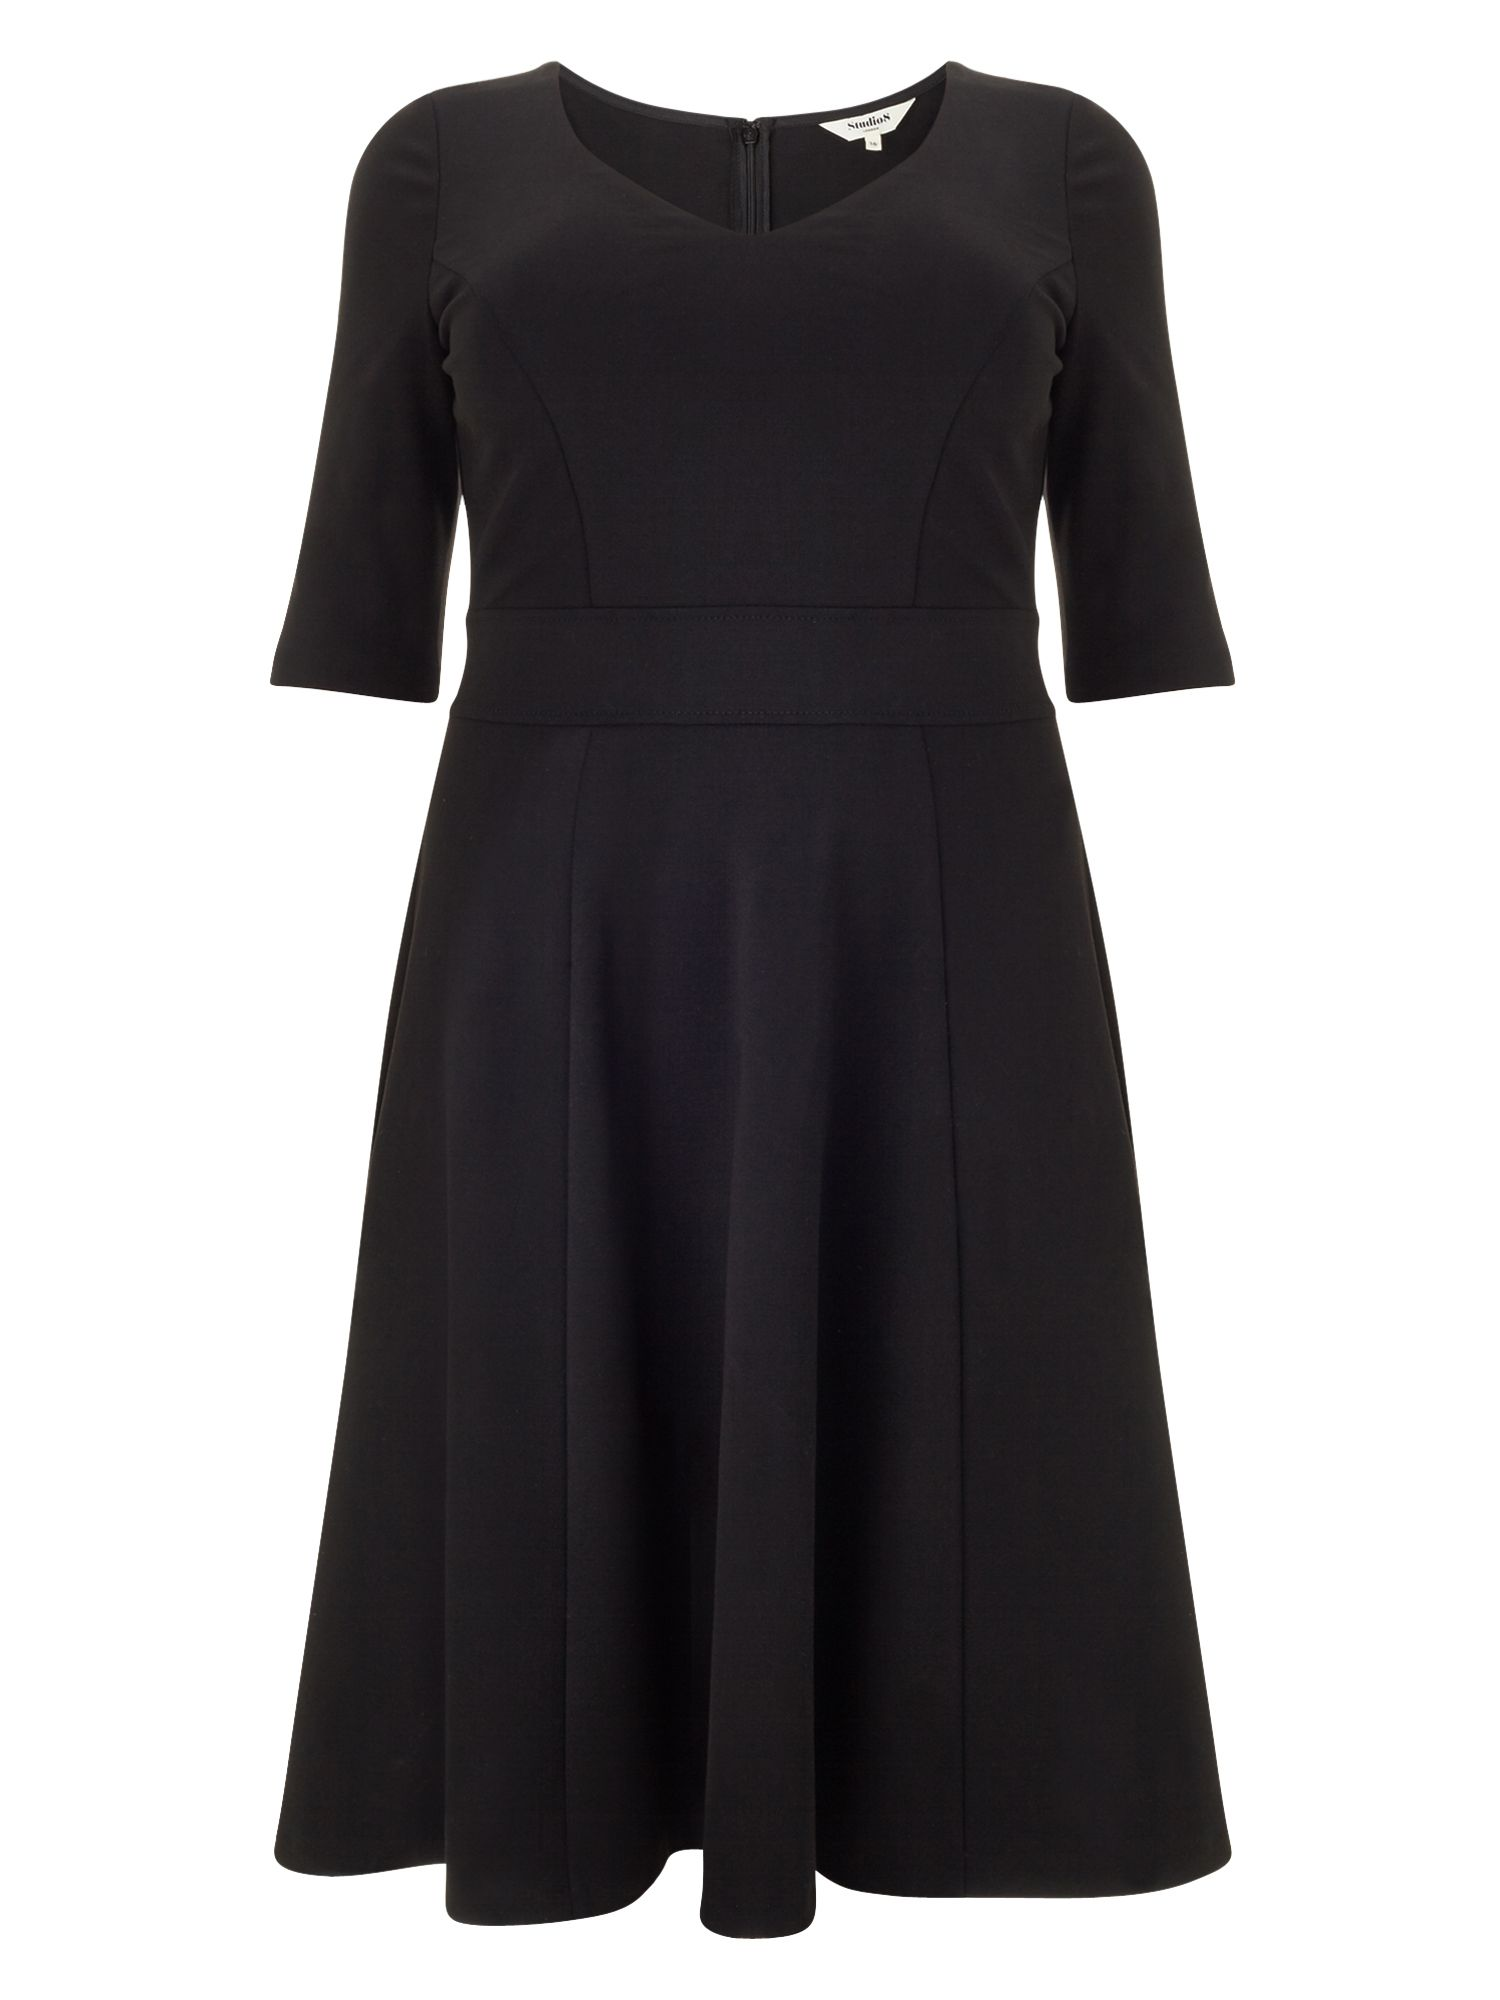 Studio 8 Minetta dress, Black